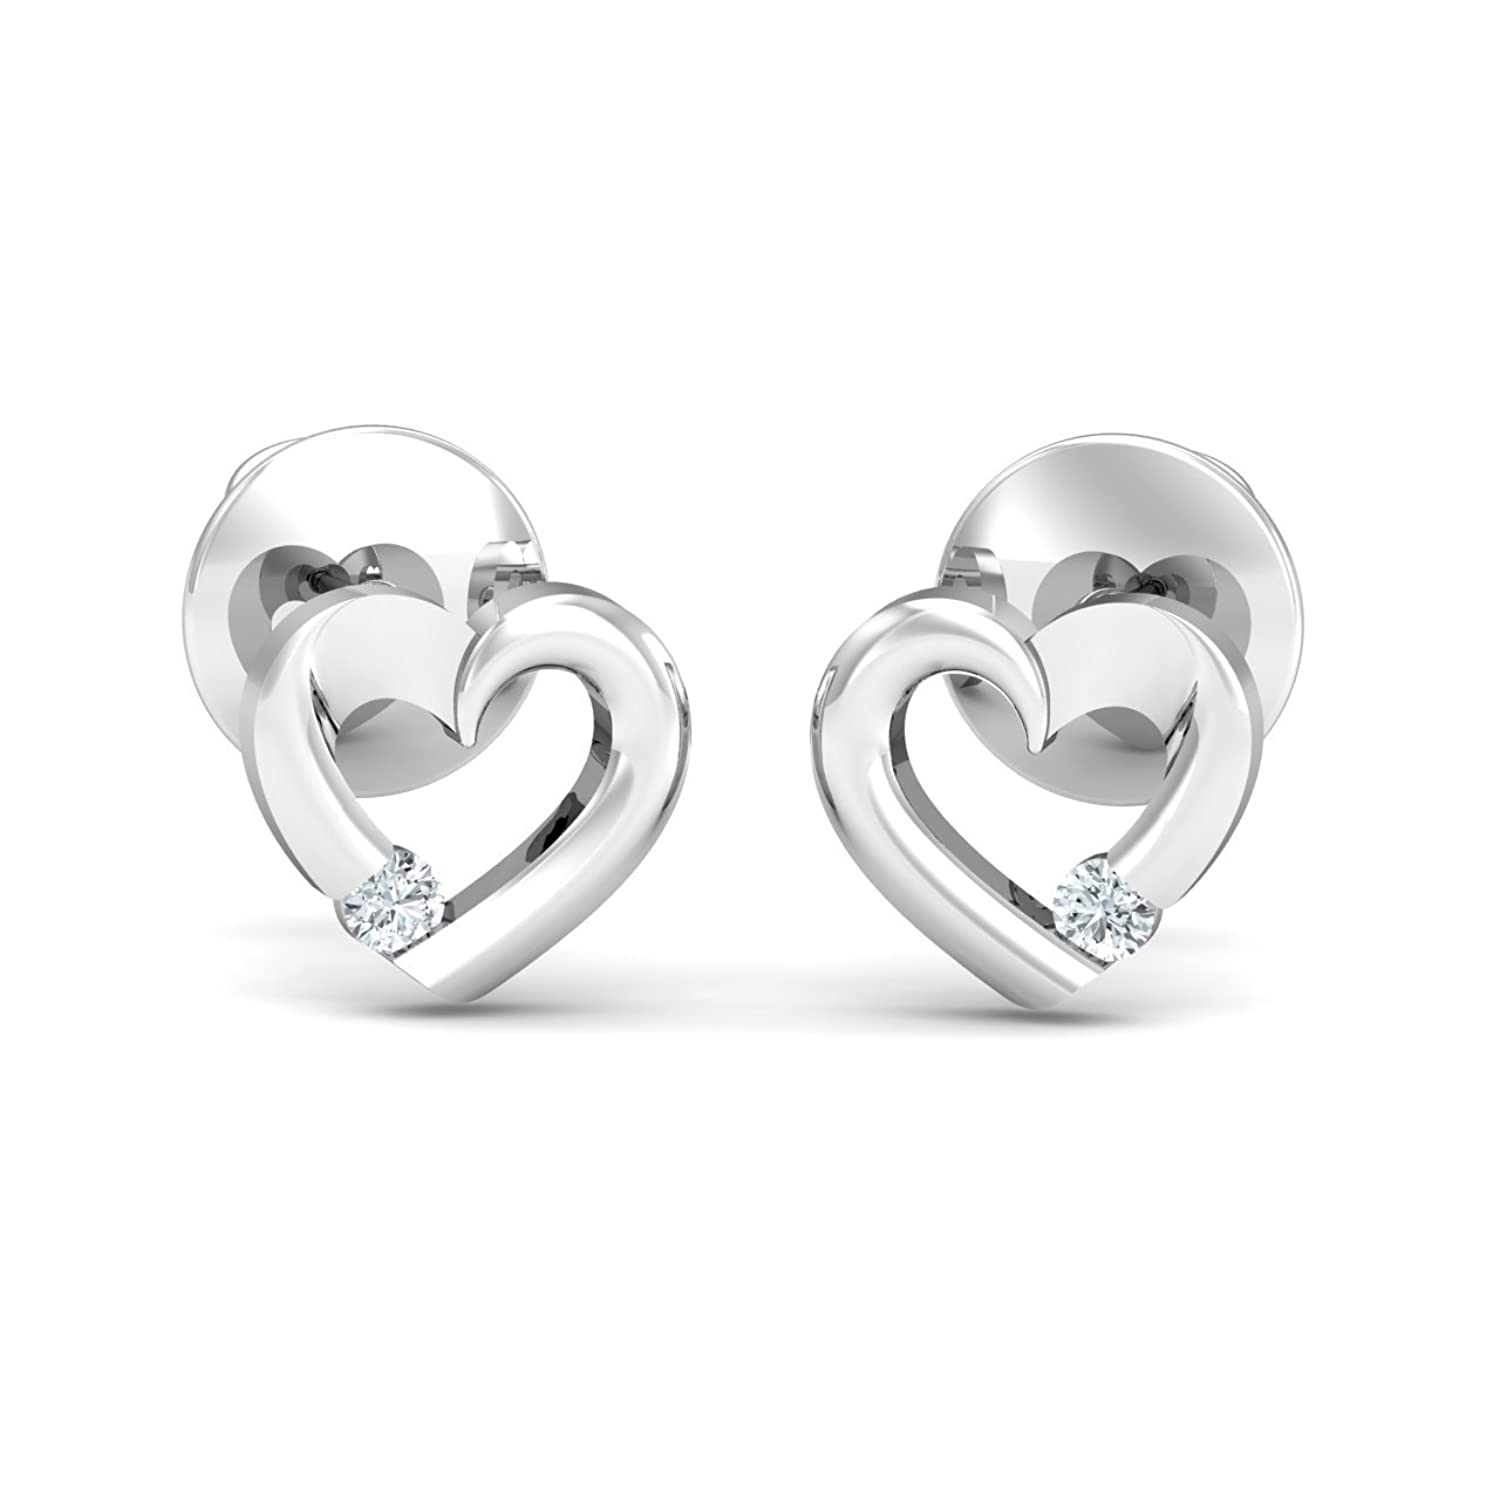 Buy KuberBox Oro 14k White Gold and Diamond Stud Earrings line at